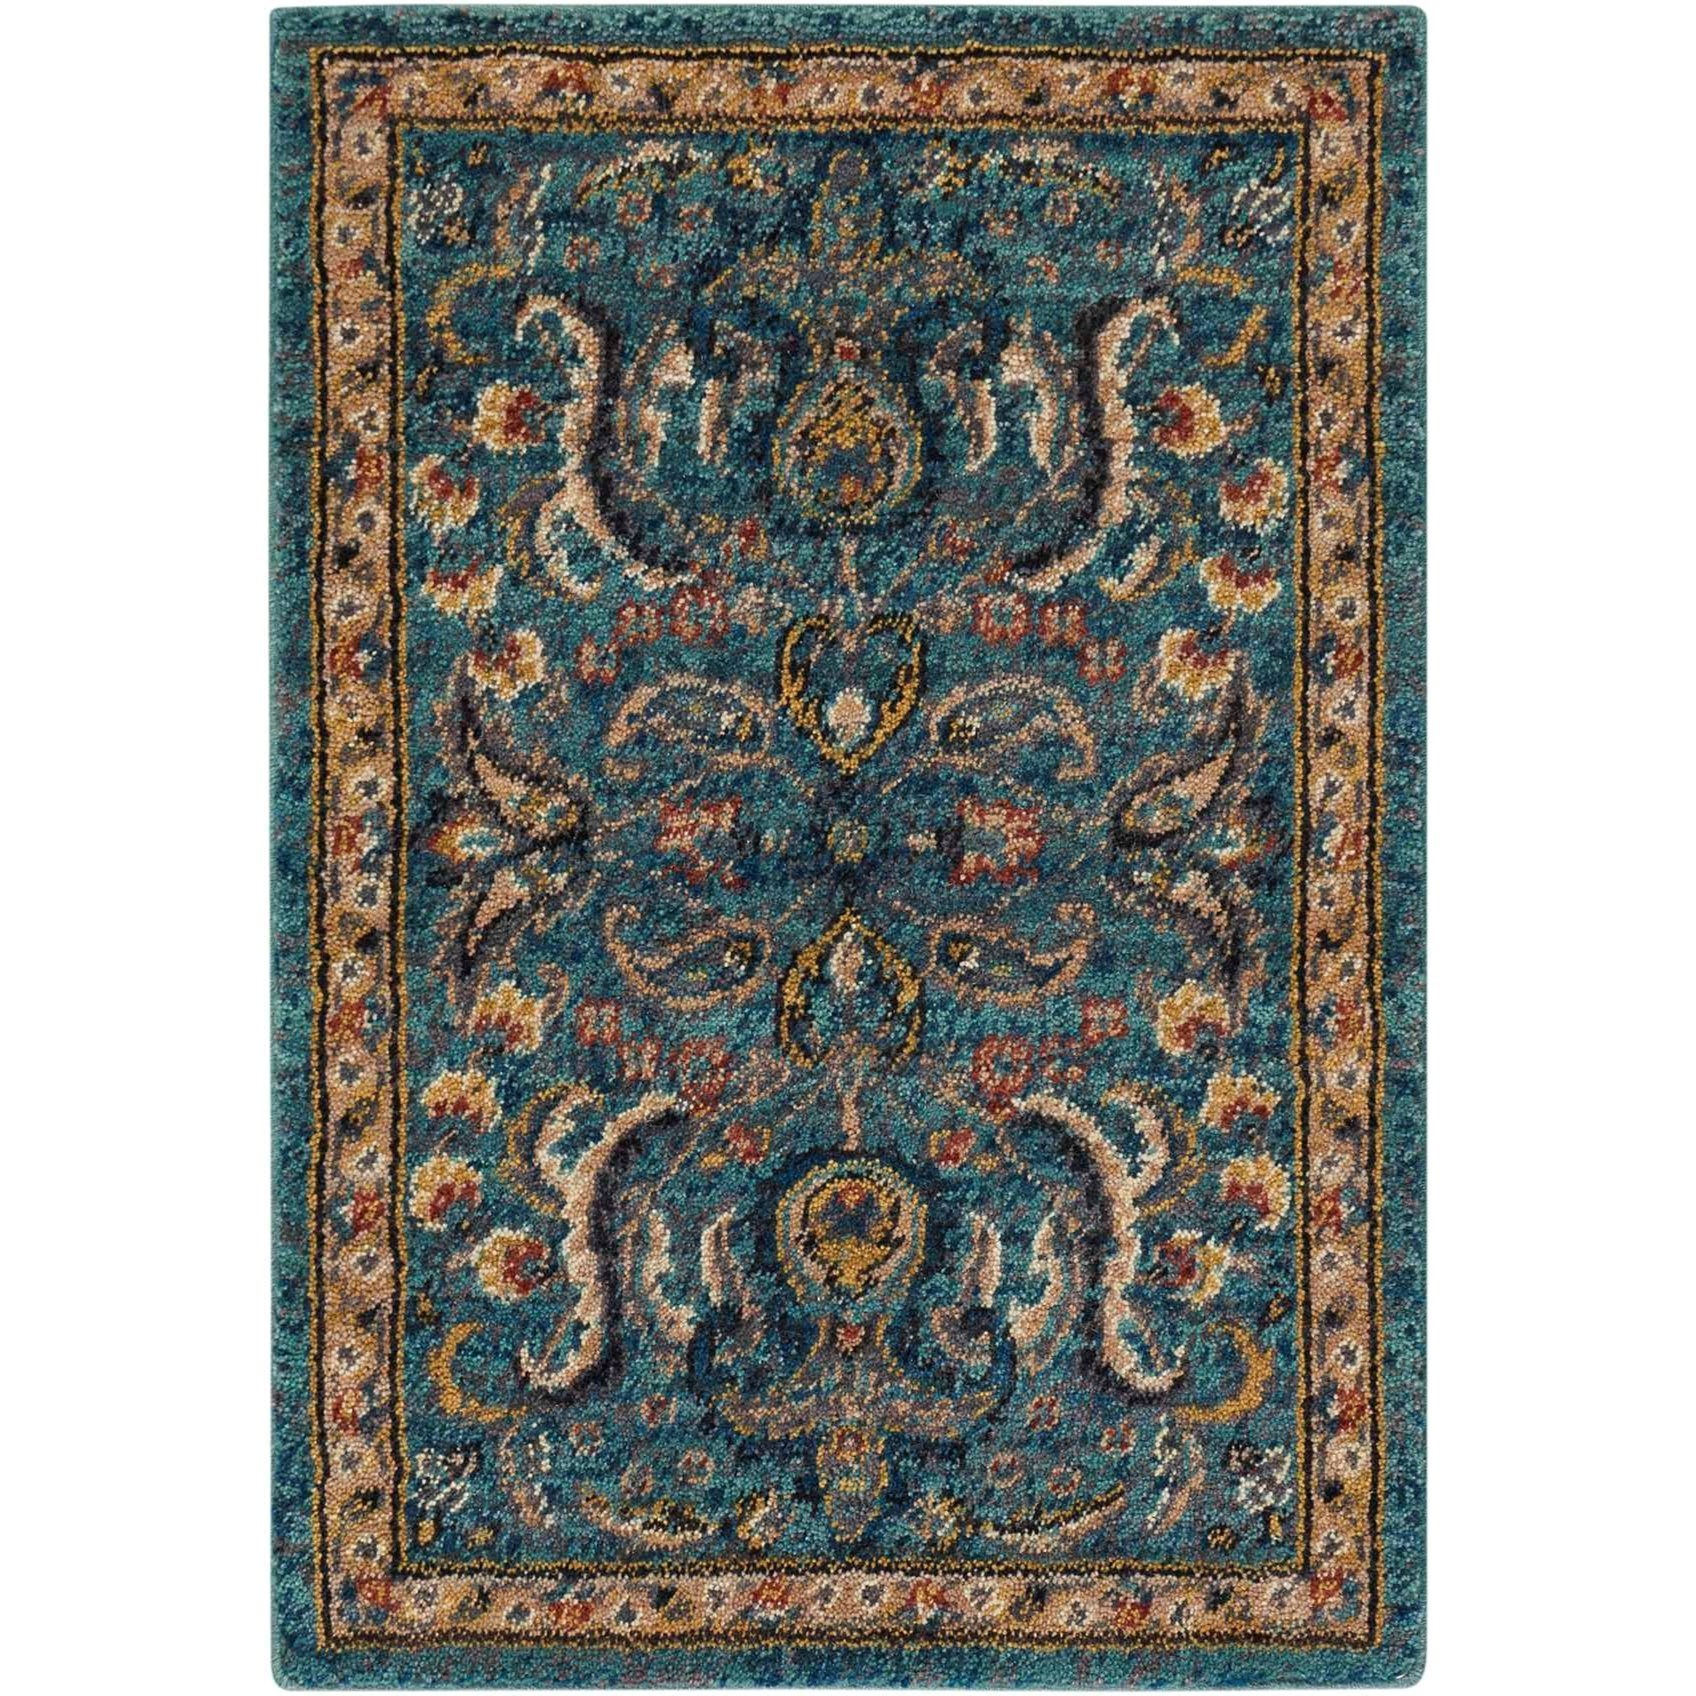 Nourison 2020 2' X 3' Teal Rug by Nourison at Home Collections Furniture